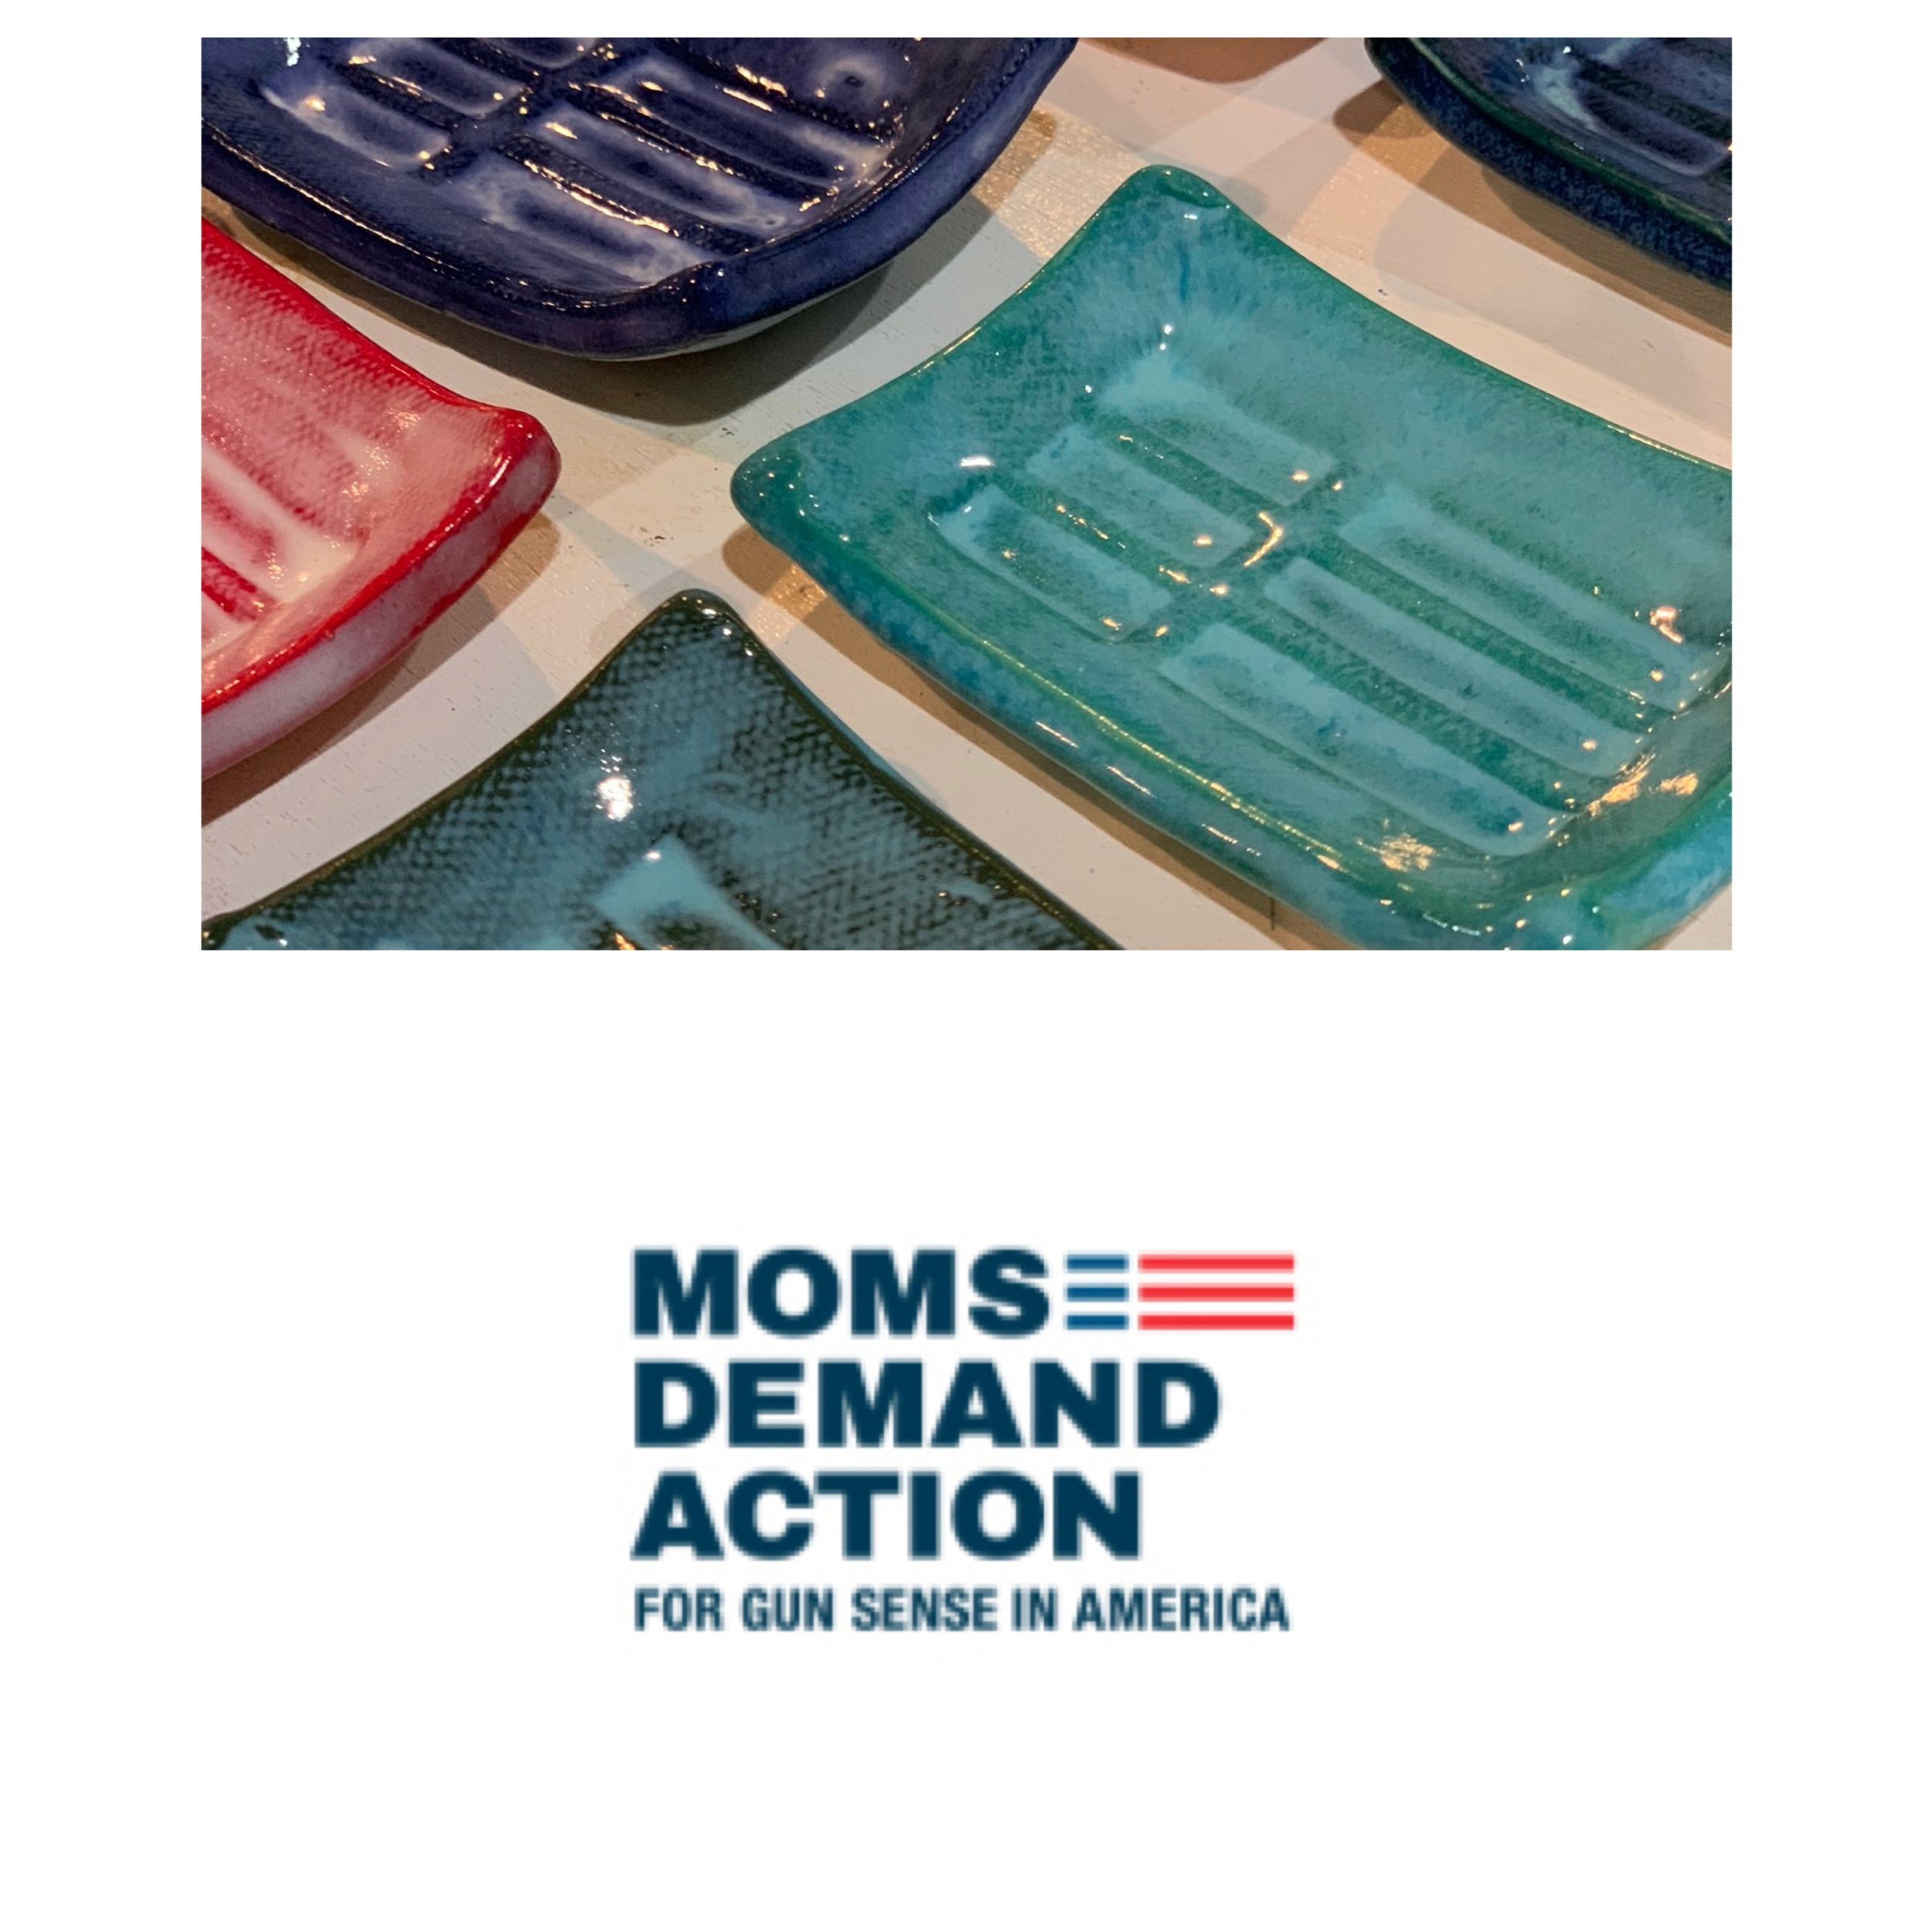 My Annual Open Studio Sale on December 9 this year will benefit the Moms Demand Action local chapter. I have created a special little logo dish to sell at this event. Keep your eye out for details.